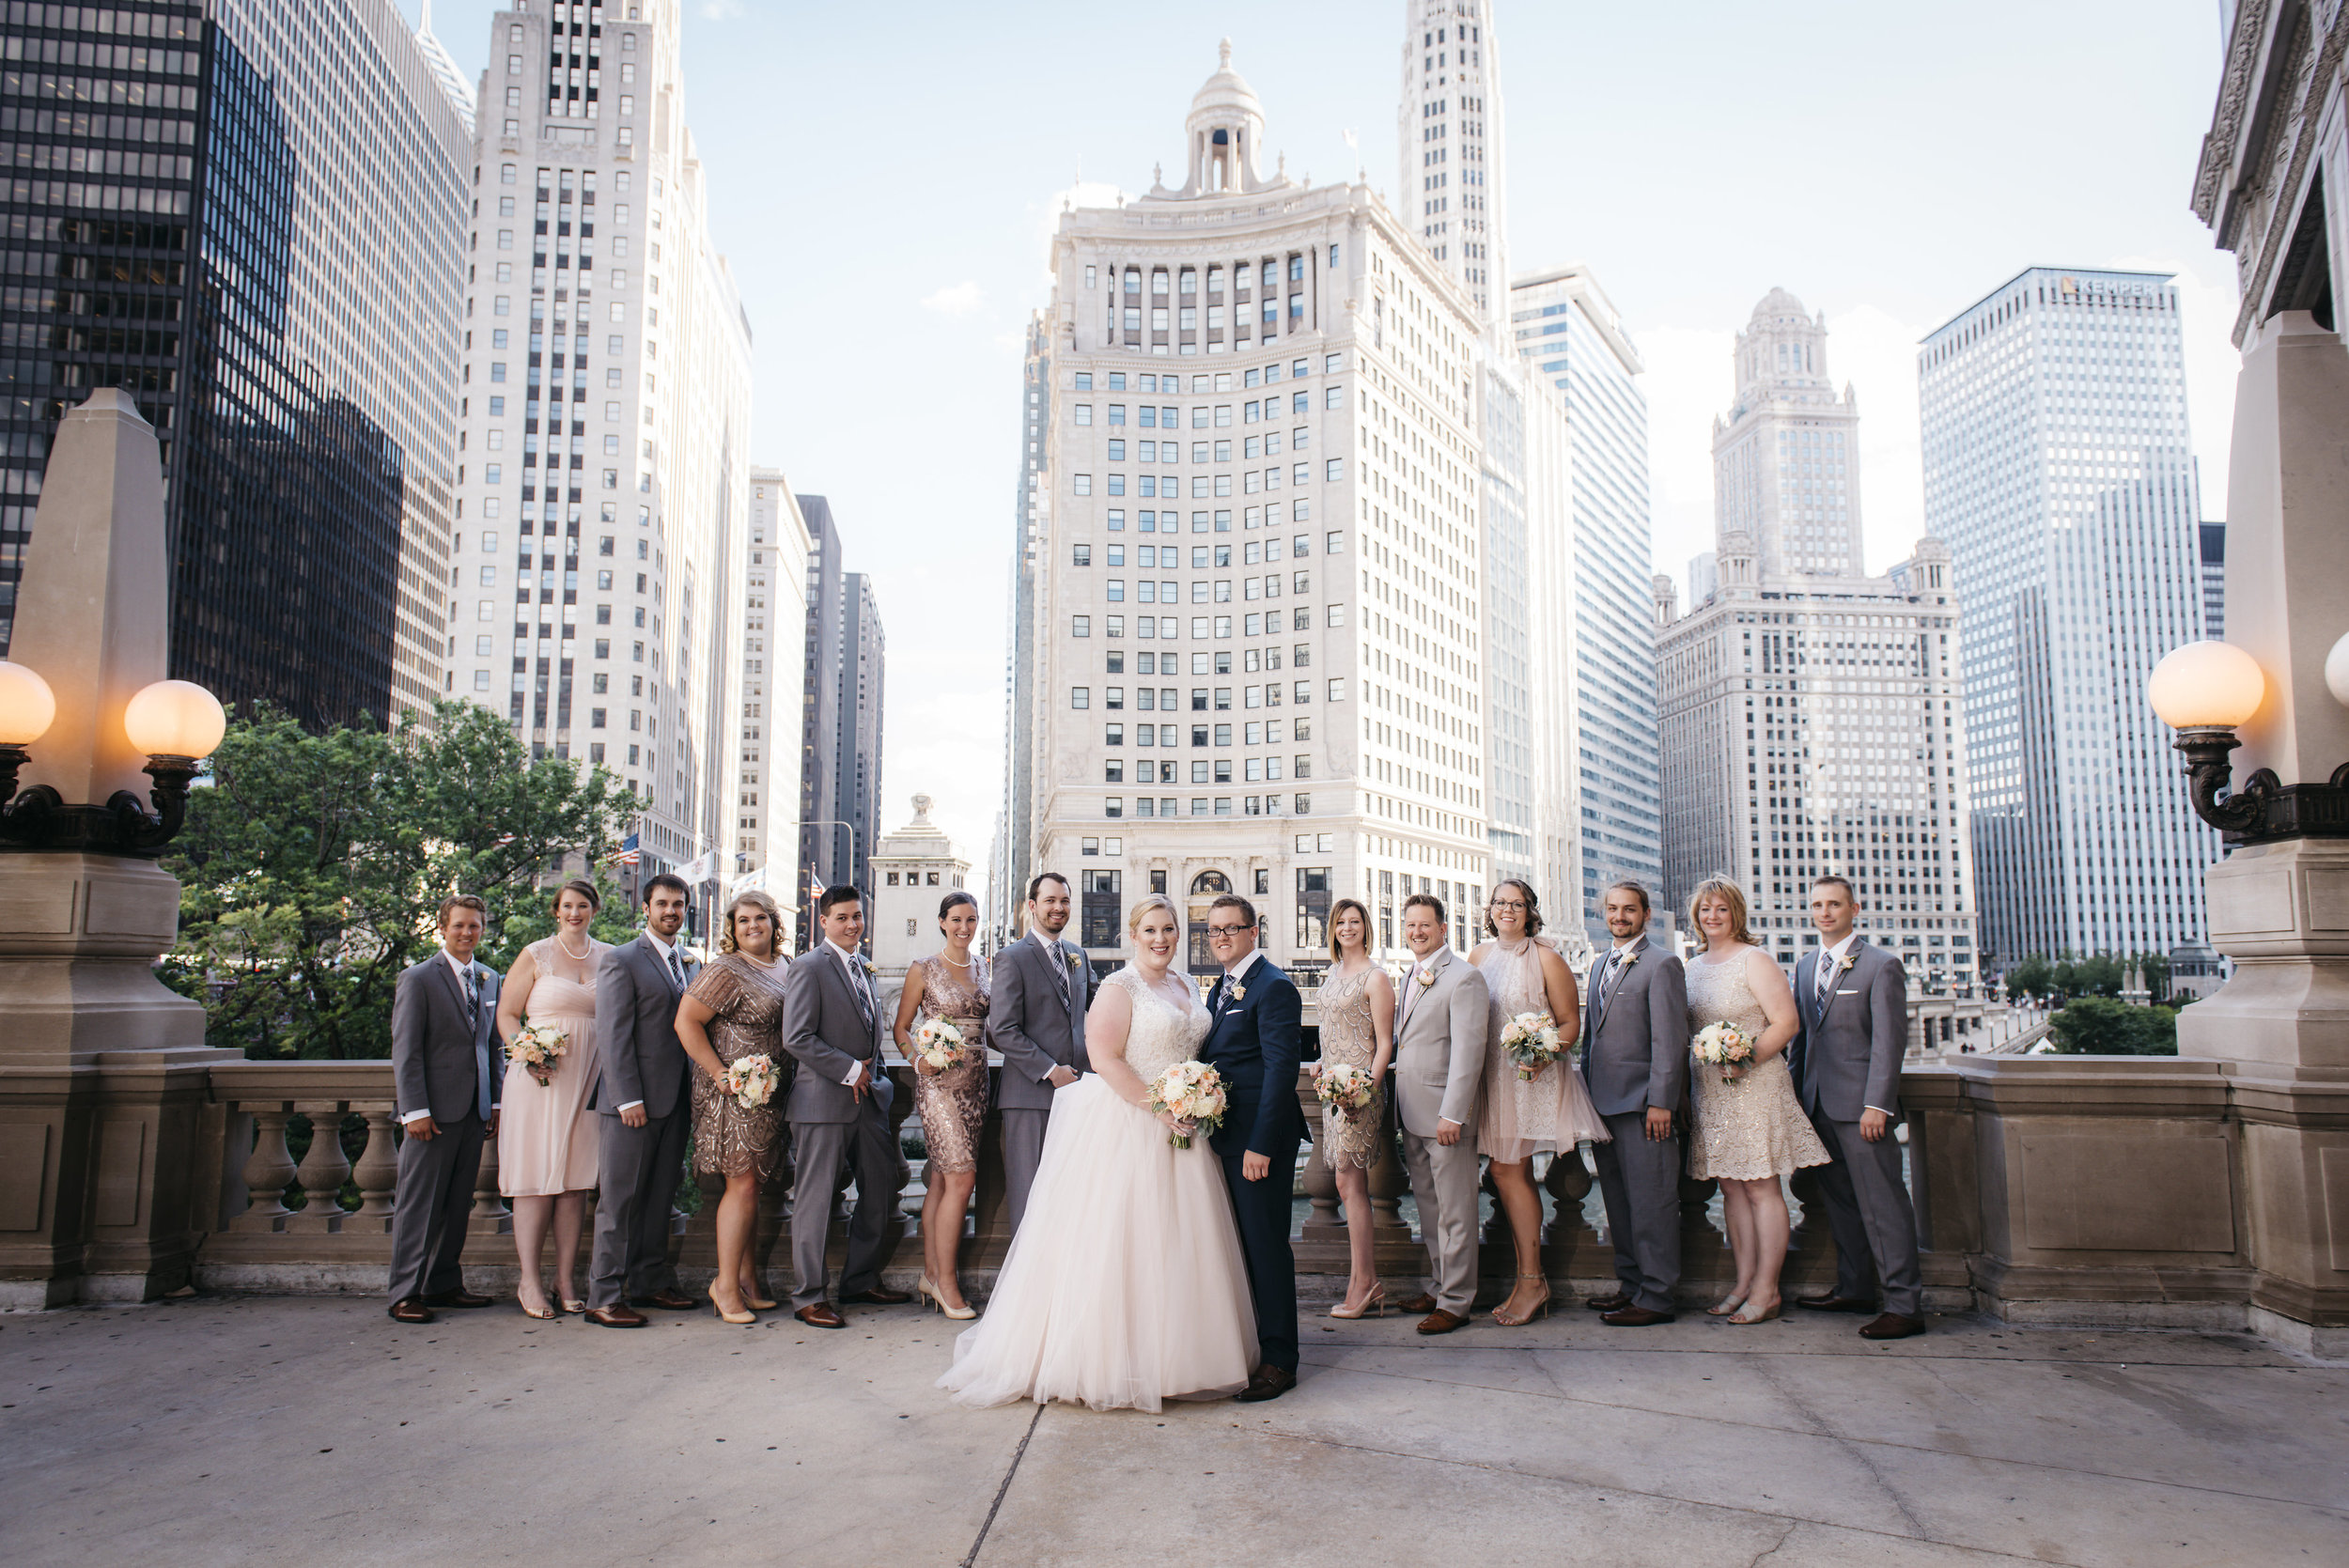 Chic wedding party in Chicago, IL